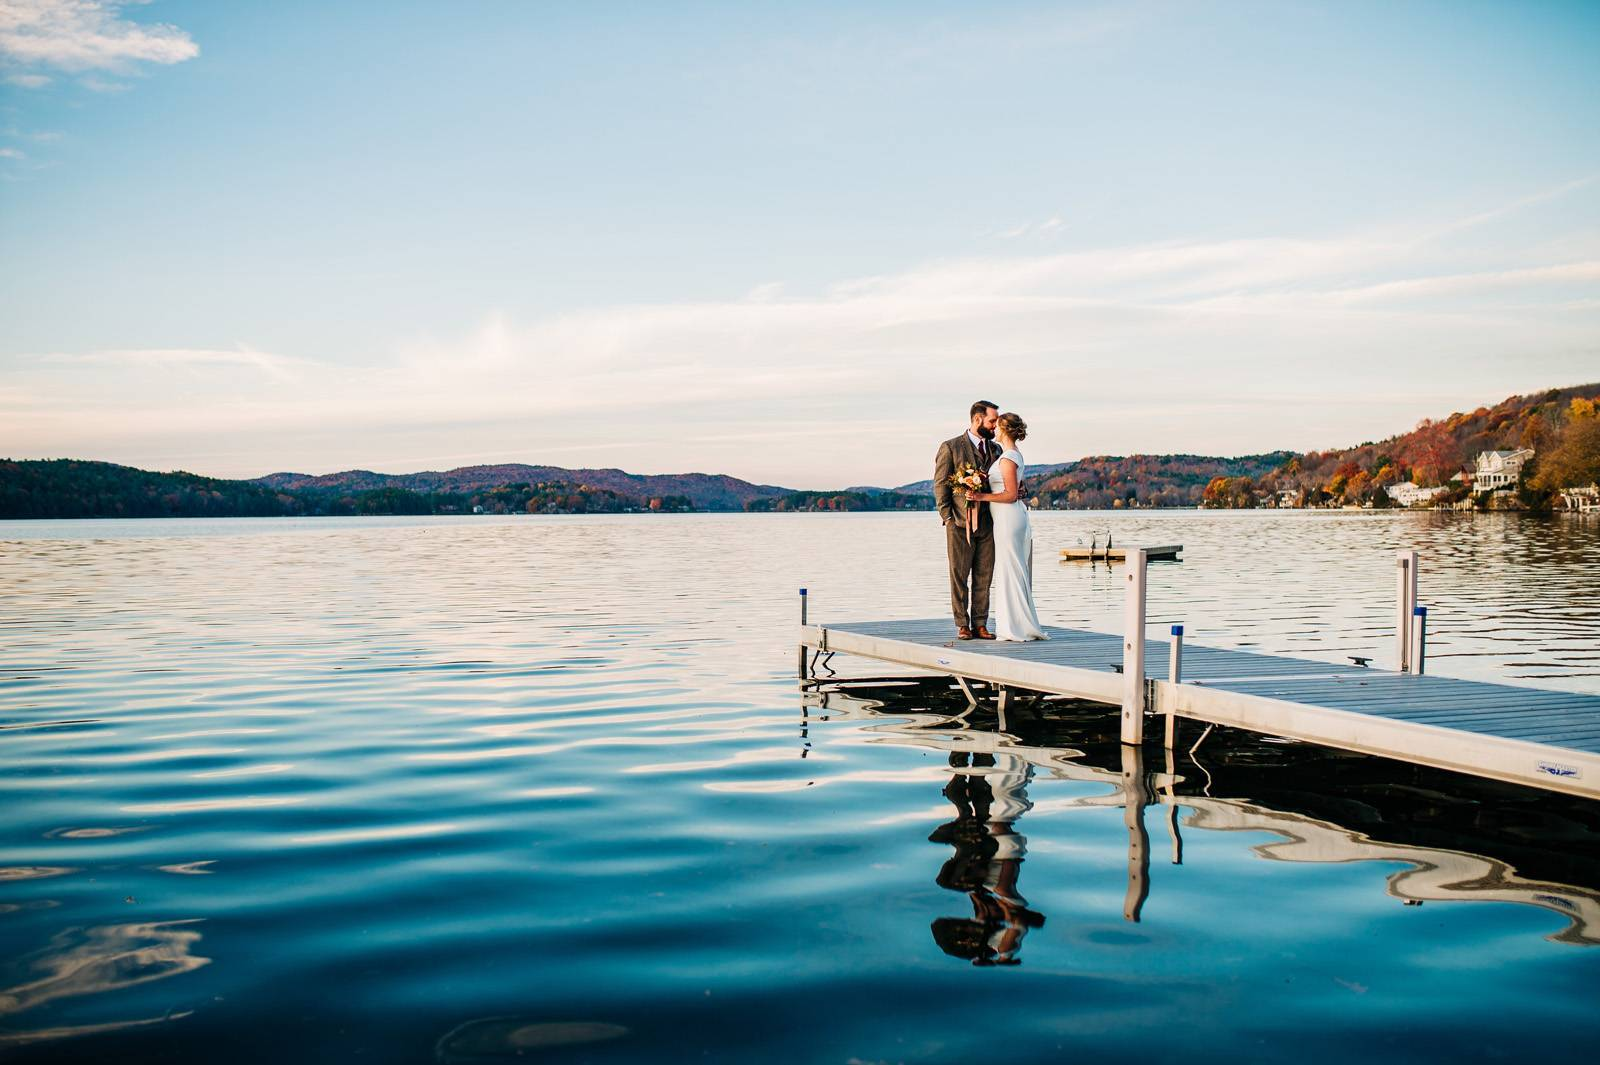 Bride and groom kissing at dock's edge on wedding day